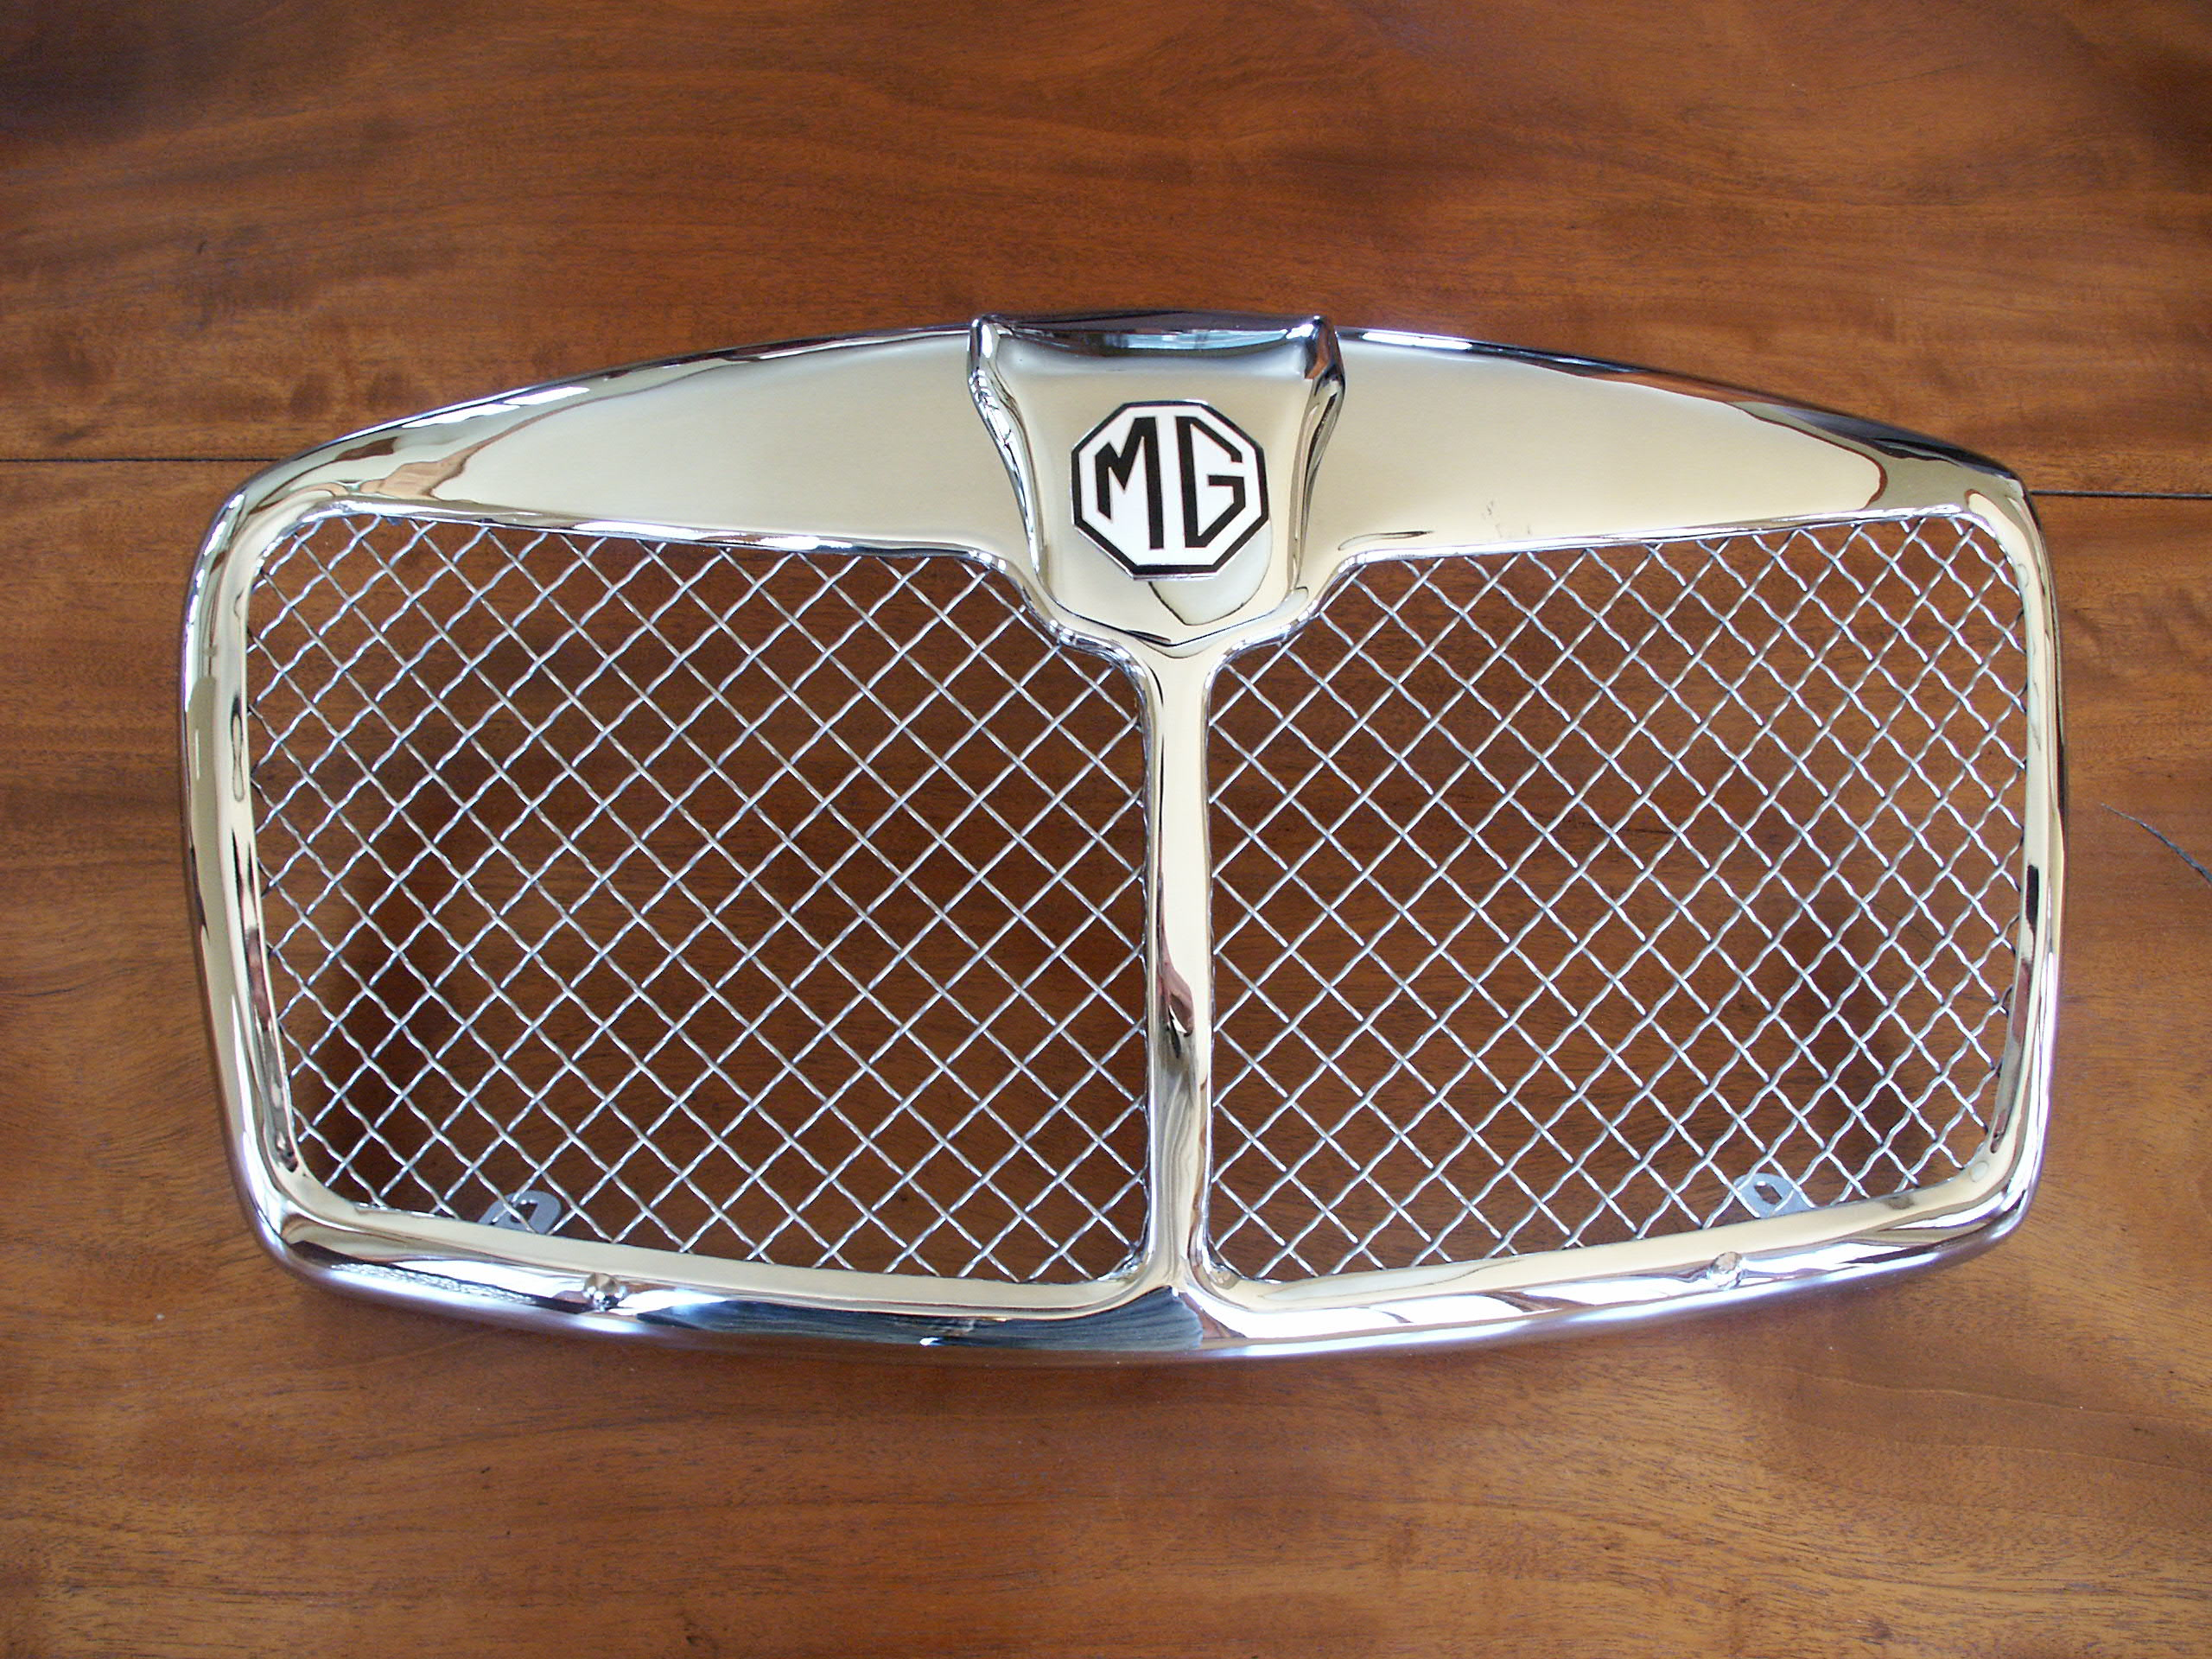 Lightweight Mesh Grille Kit for MGA Mk1